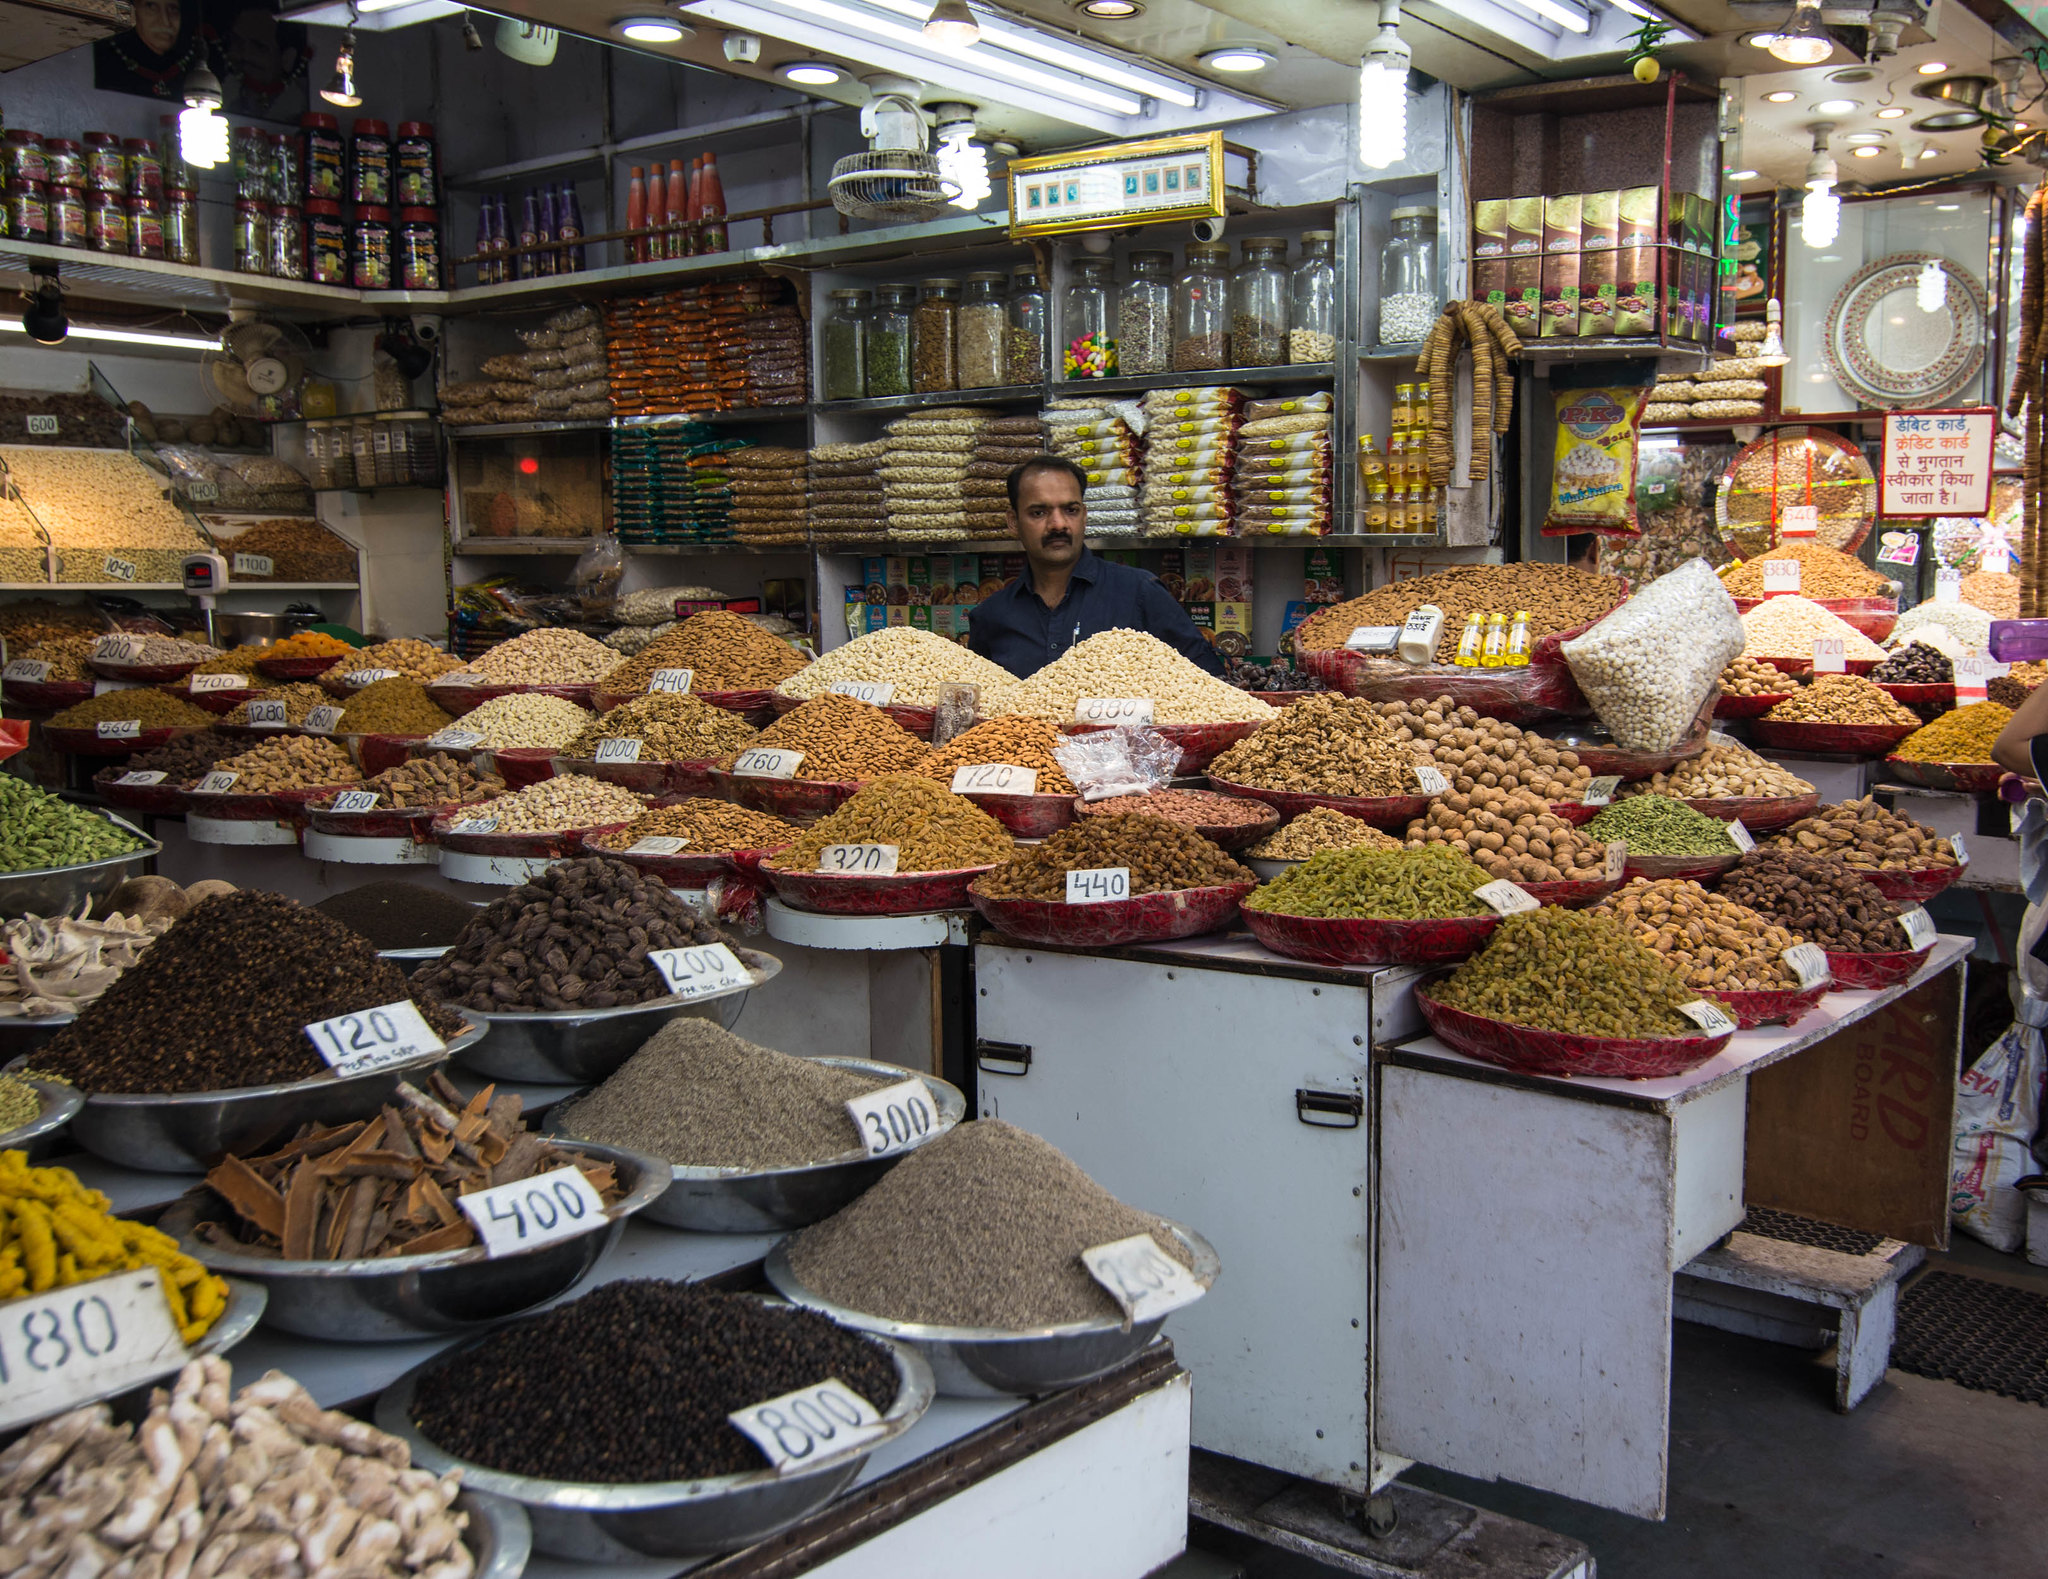 Walking in spice market